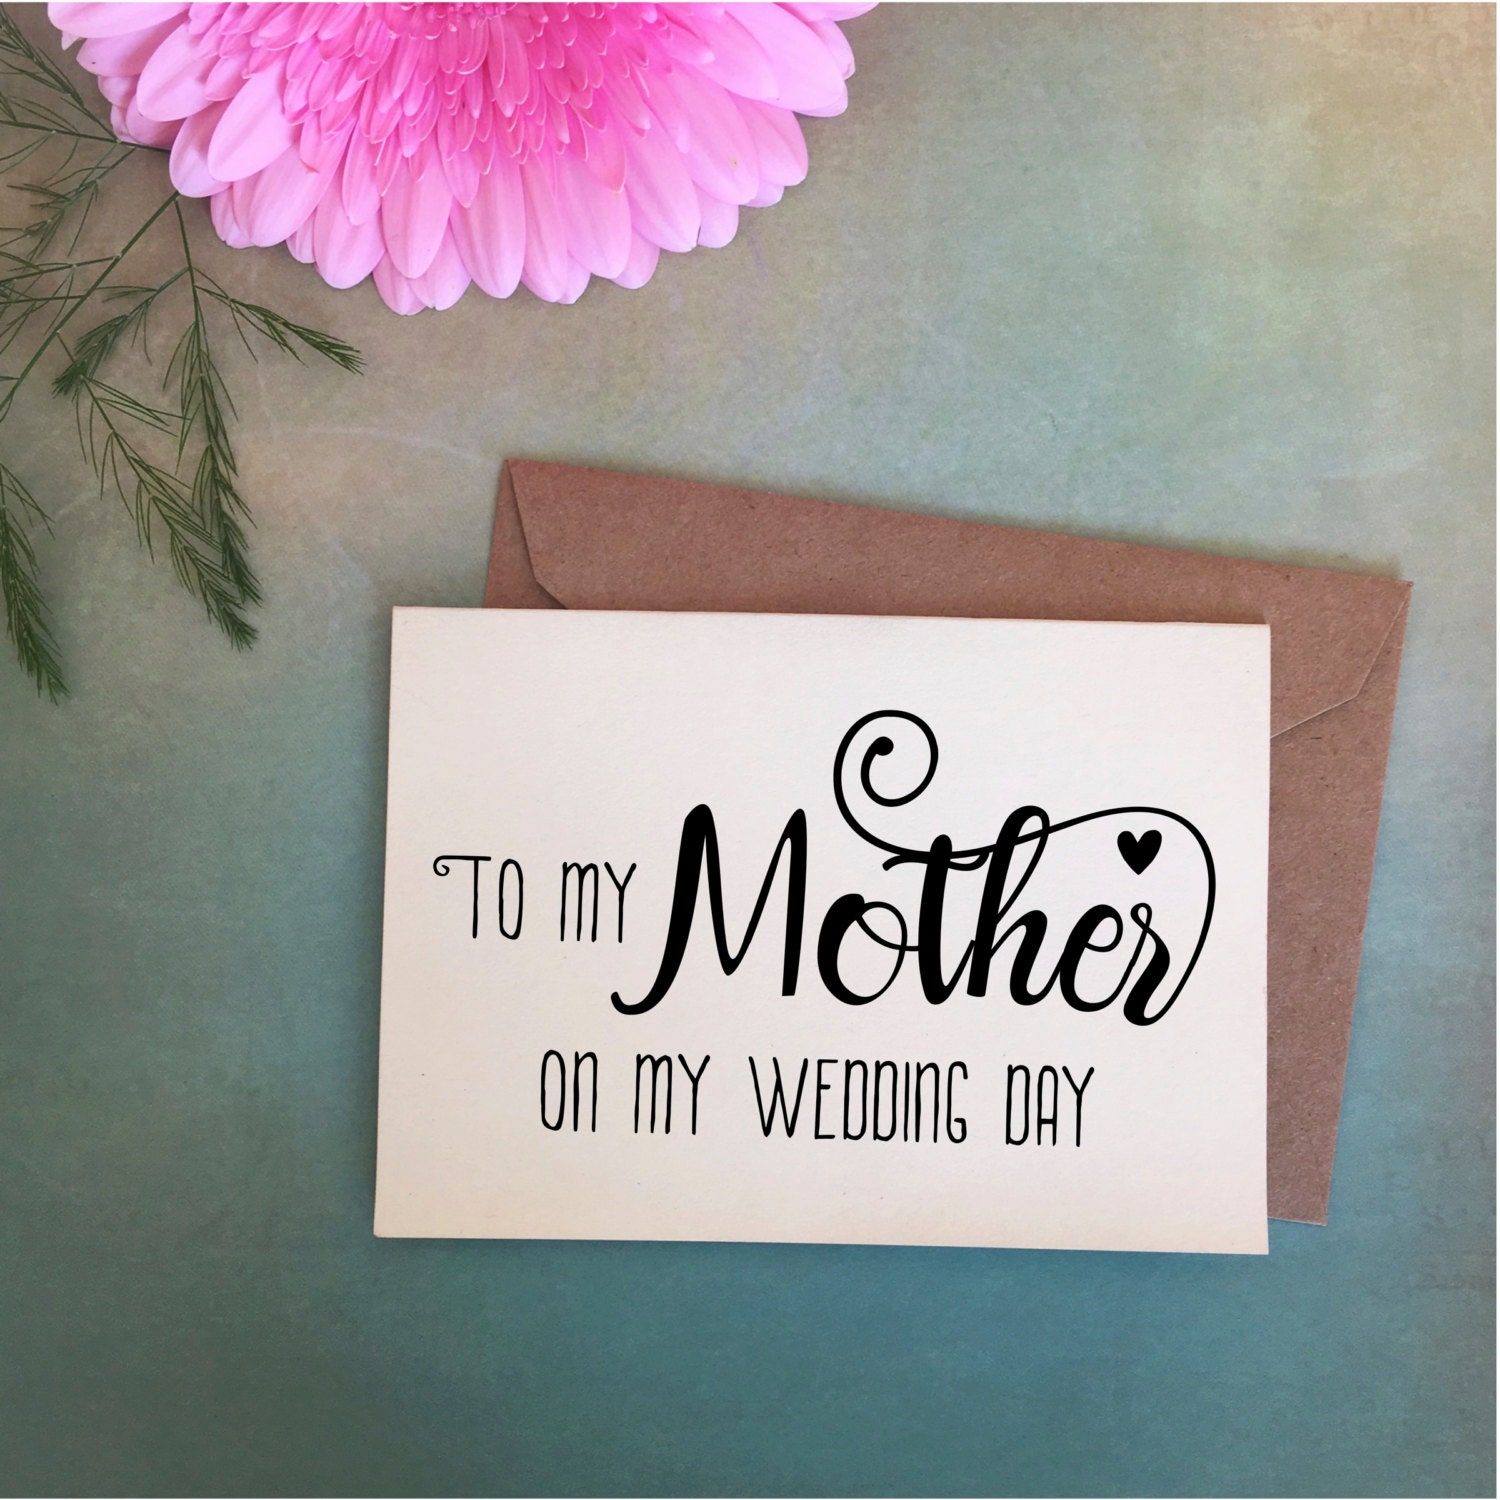 Mother of the bride gift mother of the groom gift to my mother mother of the bride gift mother of the groom gift to my mother card m4hsunfo